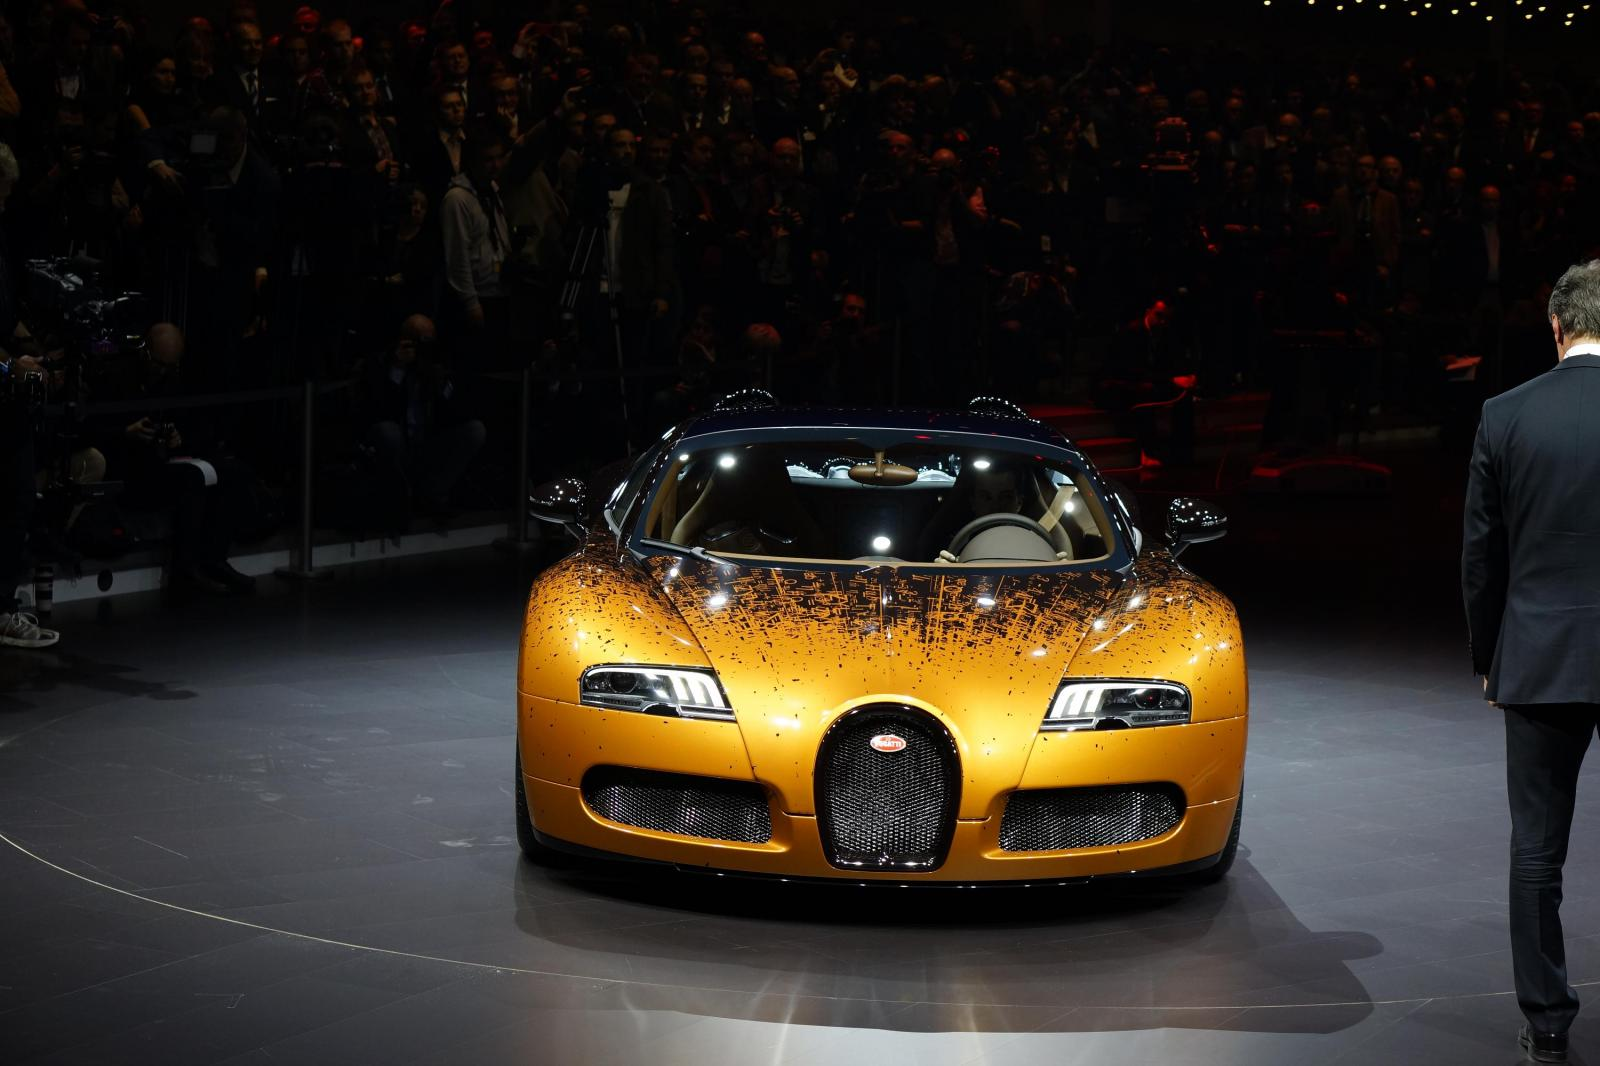 2017 Bugatti Veyron Grand Sport Bernar Venet photo - 1